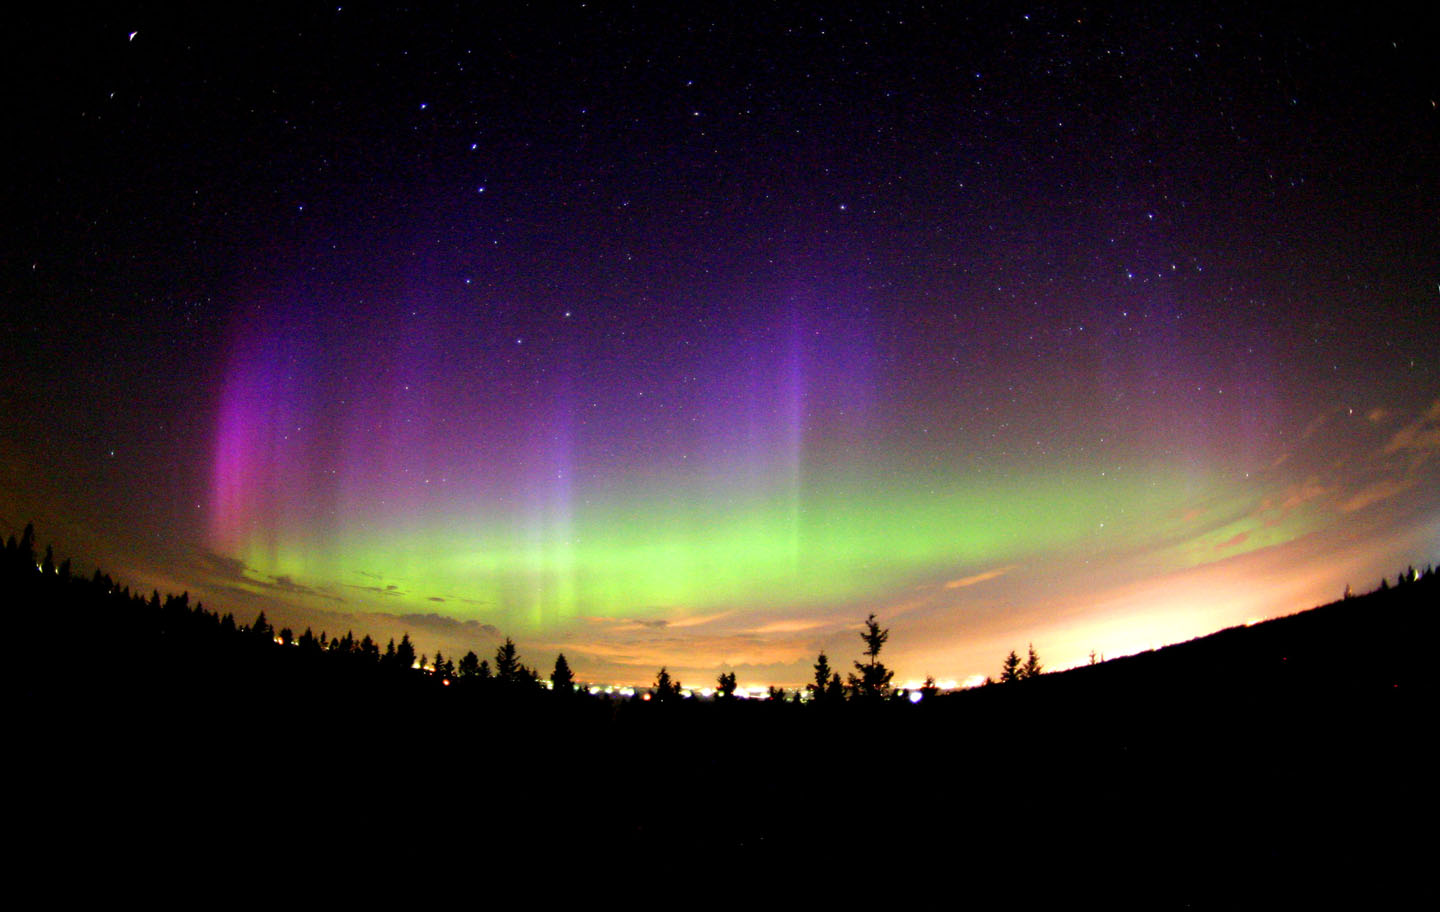 LED manufacturer discovers Northern Lights actually LEDs ...